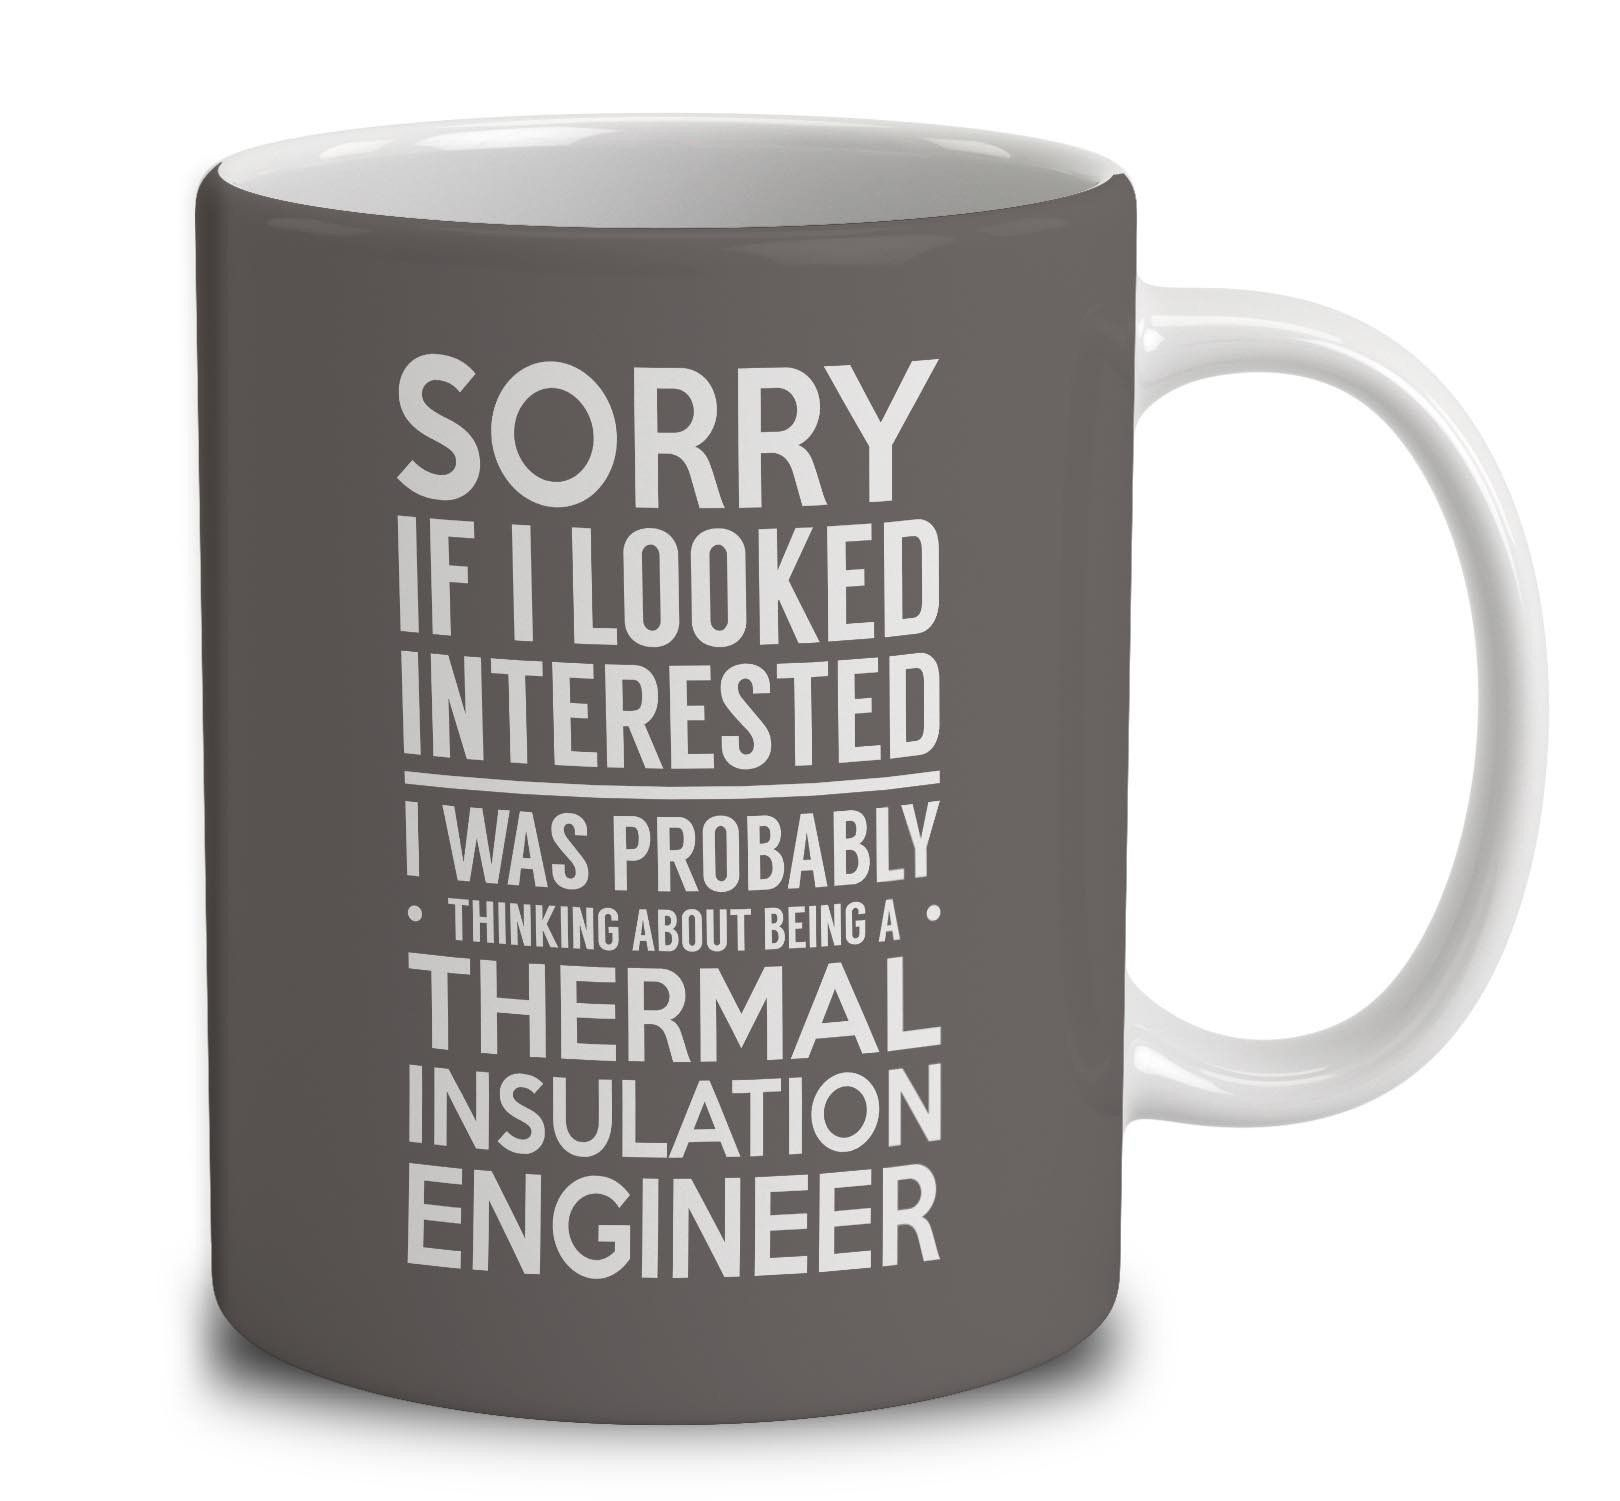 Probably Thinking About Being A Thermal Insulation Engineer